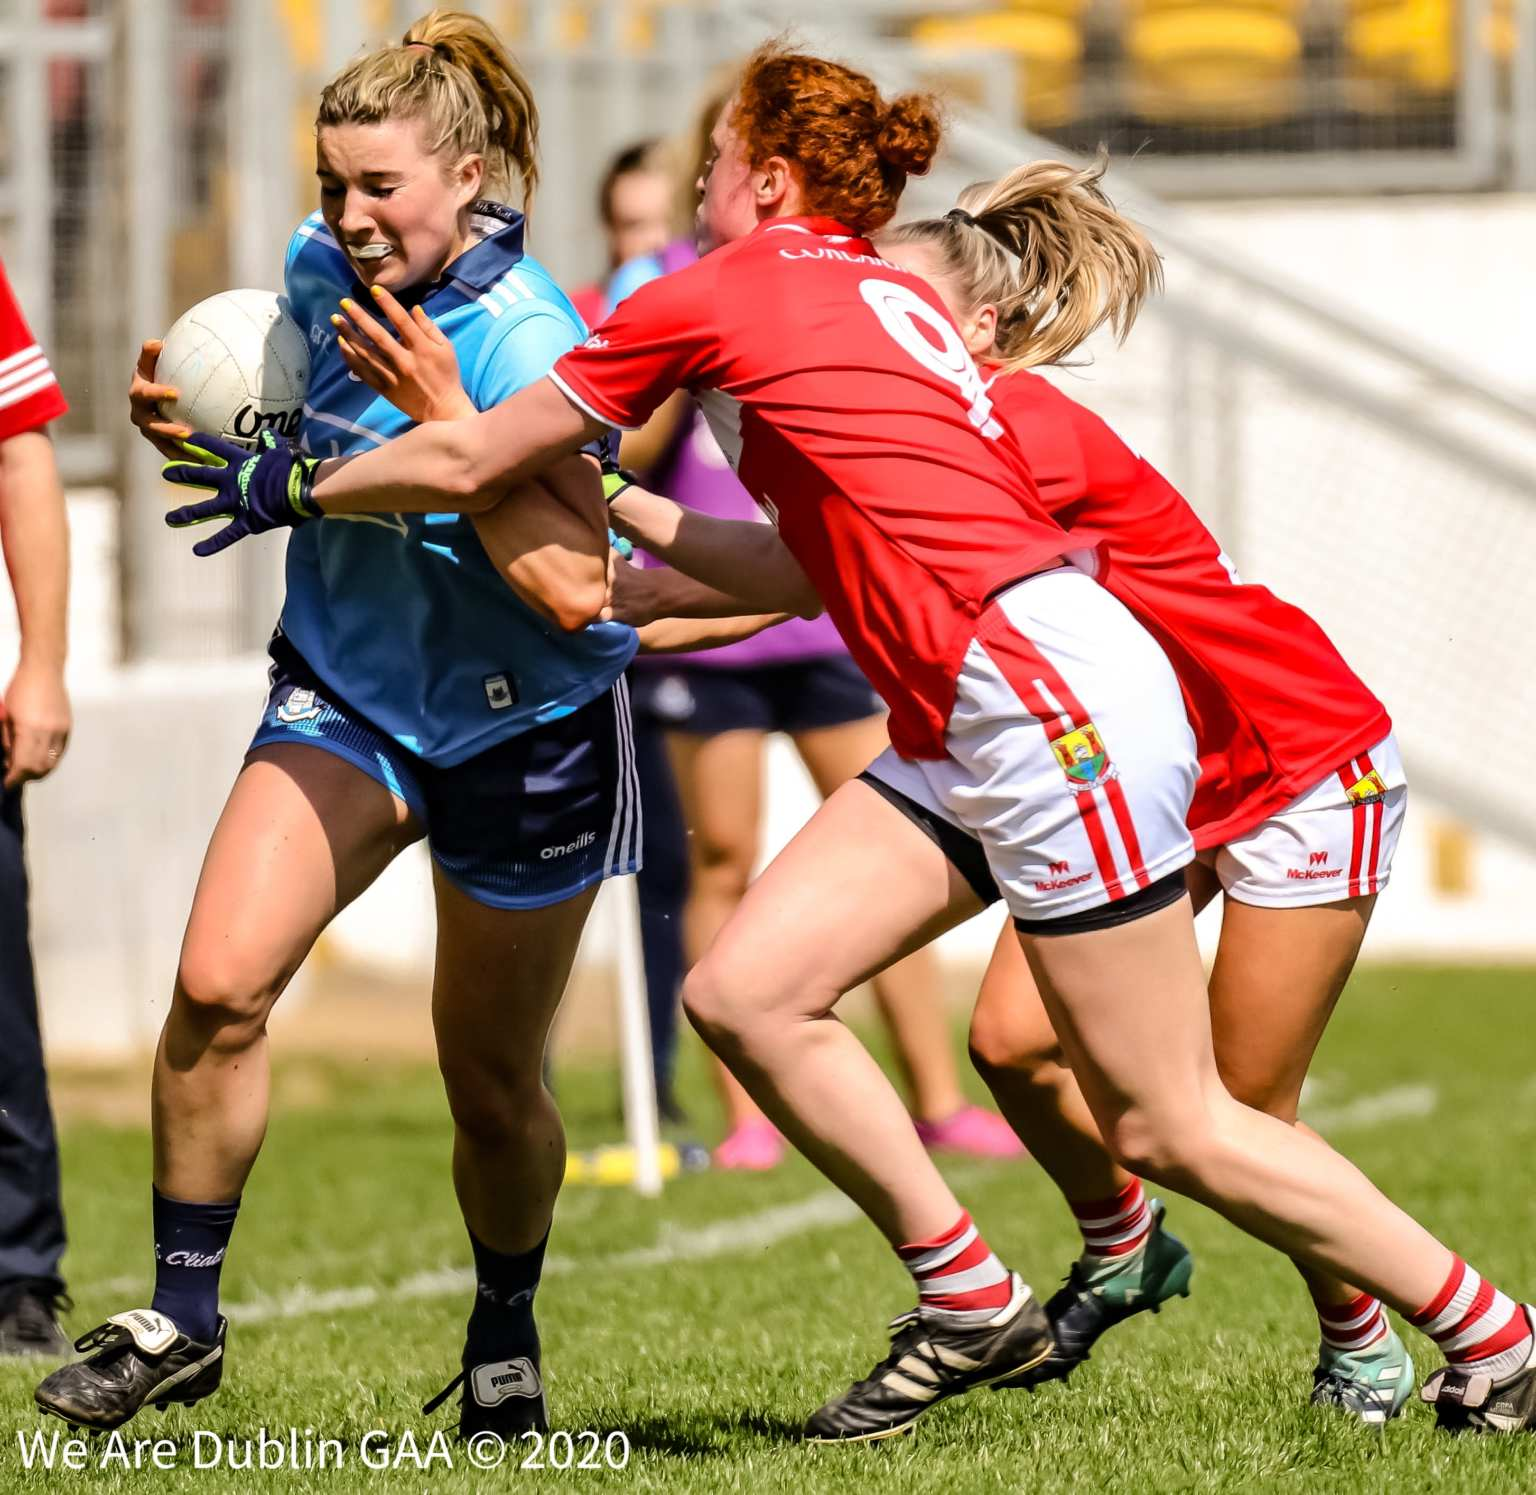 A Dublin player is tackled by two Cork players, both teams meet in A Lidl Ladies National Football League Round 3 game this weekend.